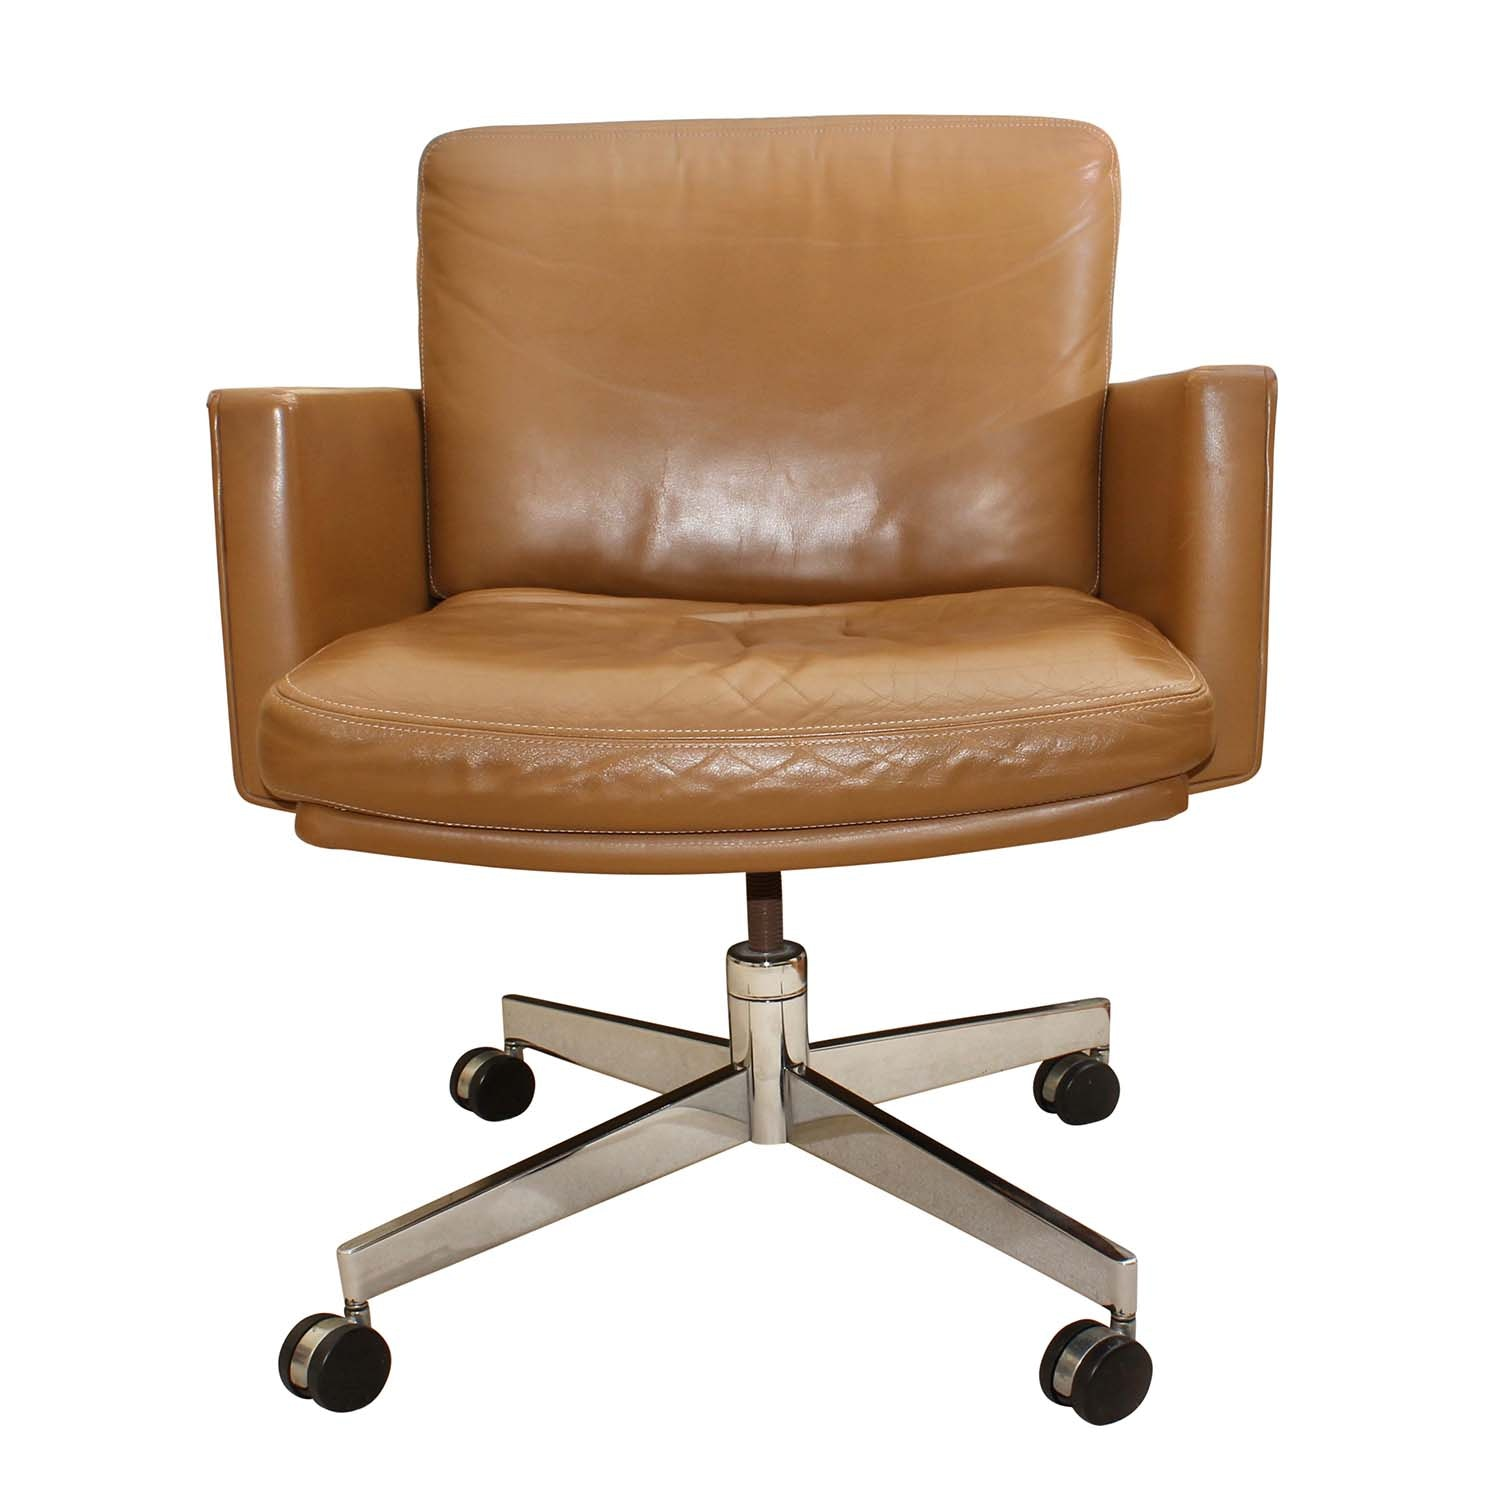 Stow-Davis Mid-Century Modern Office Chair